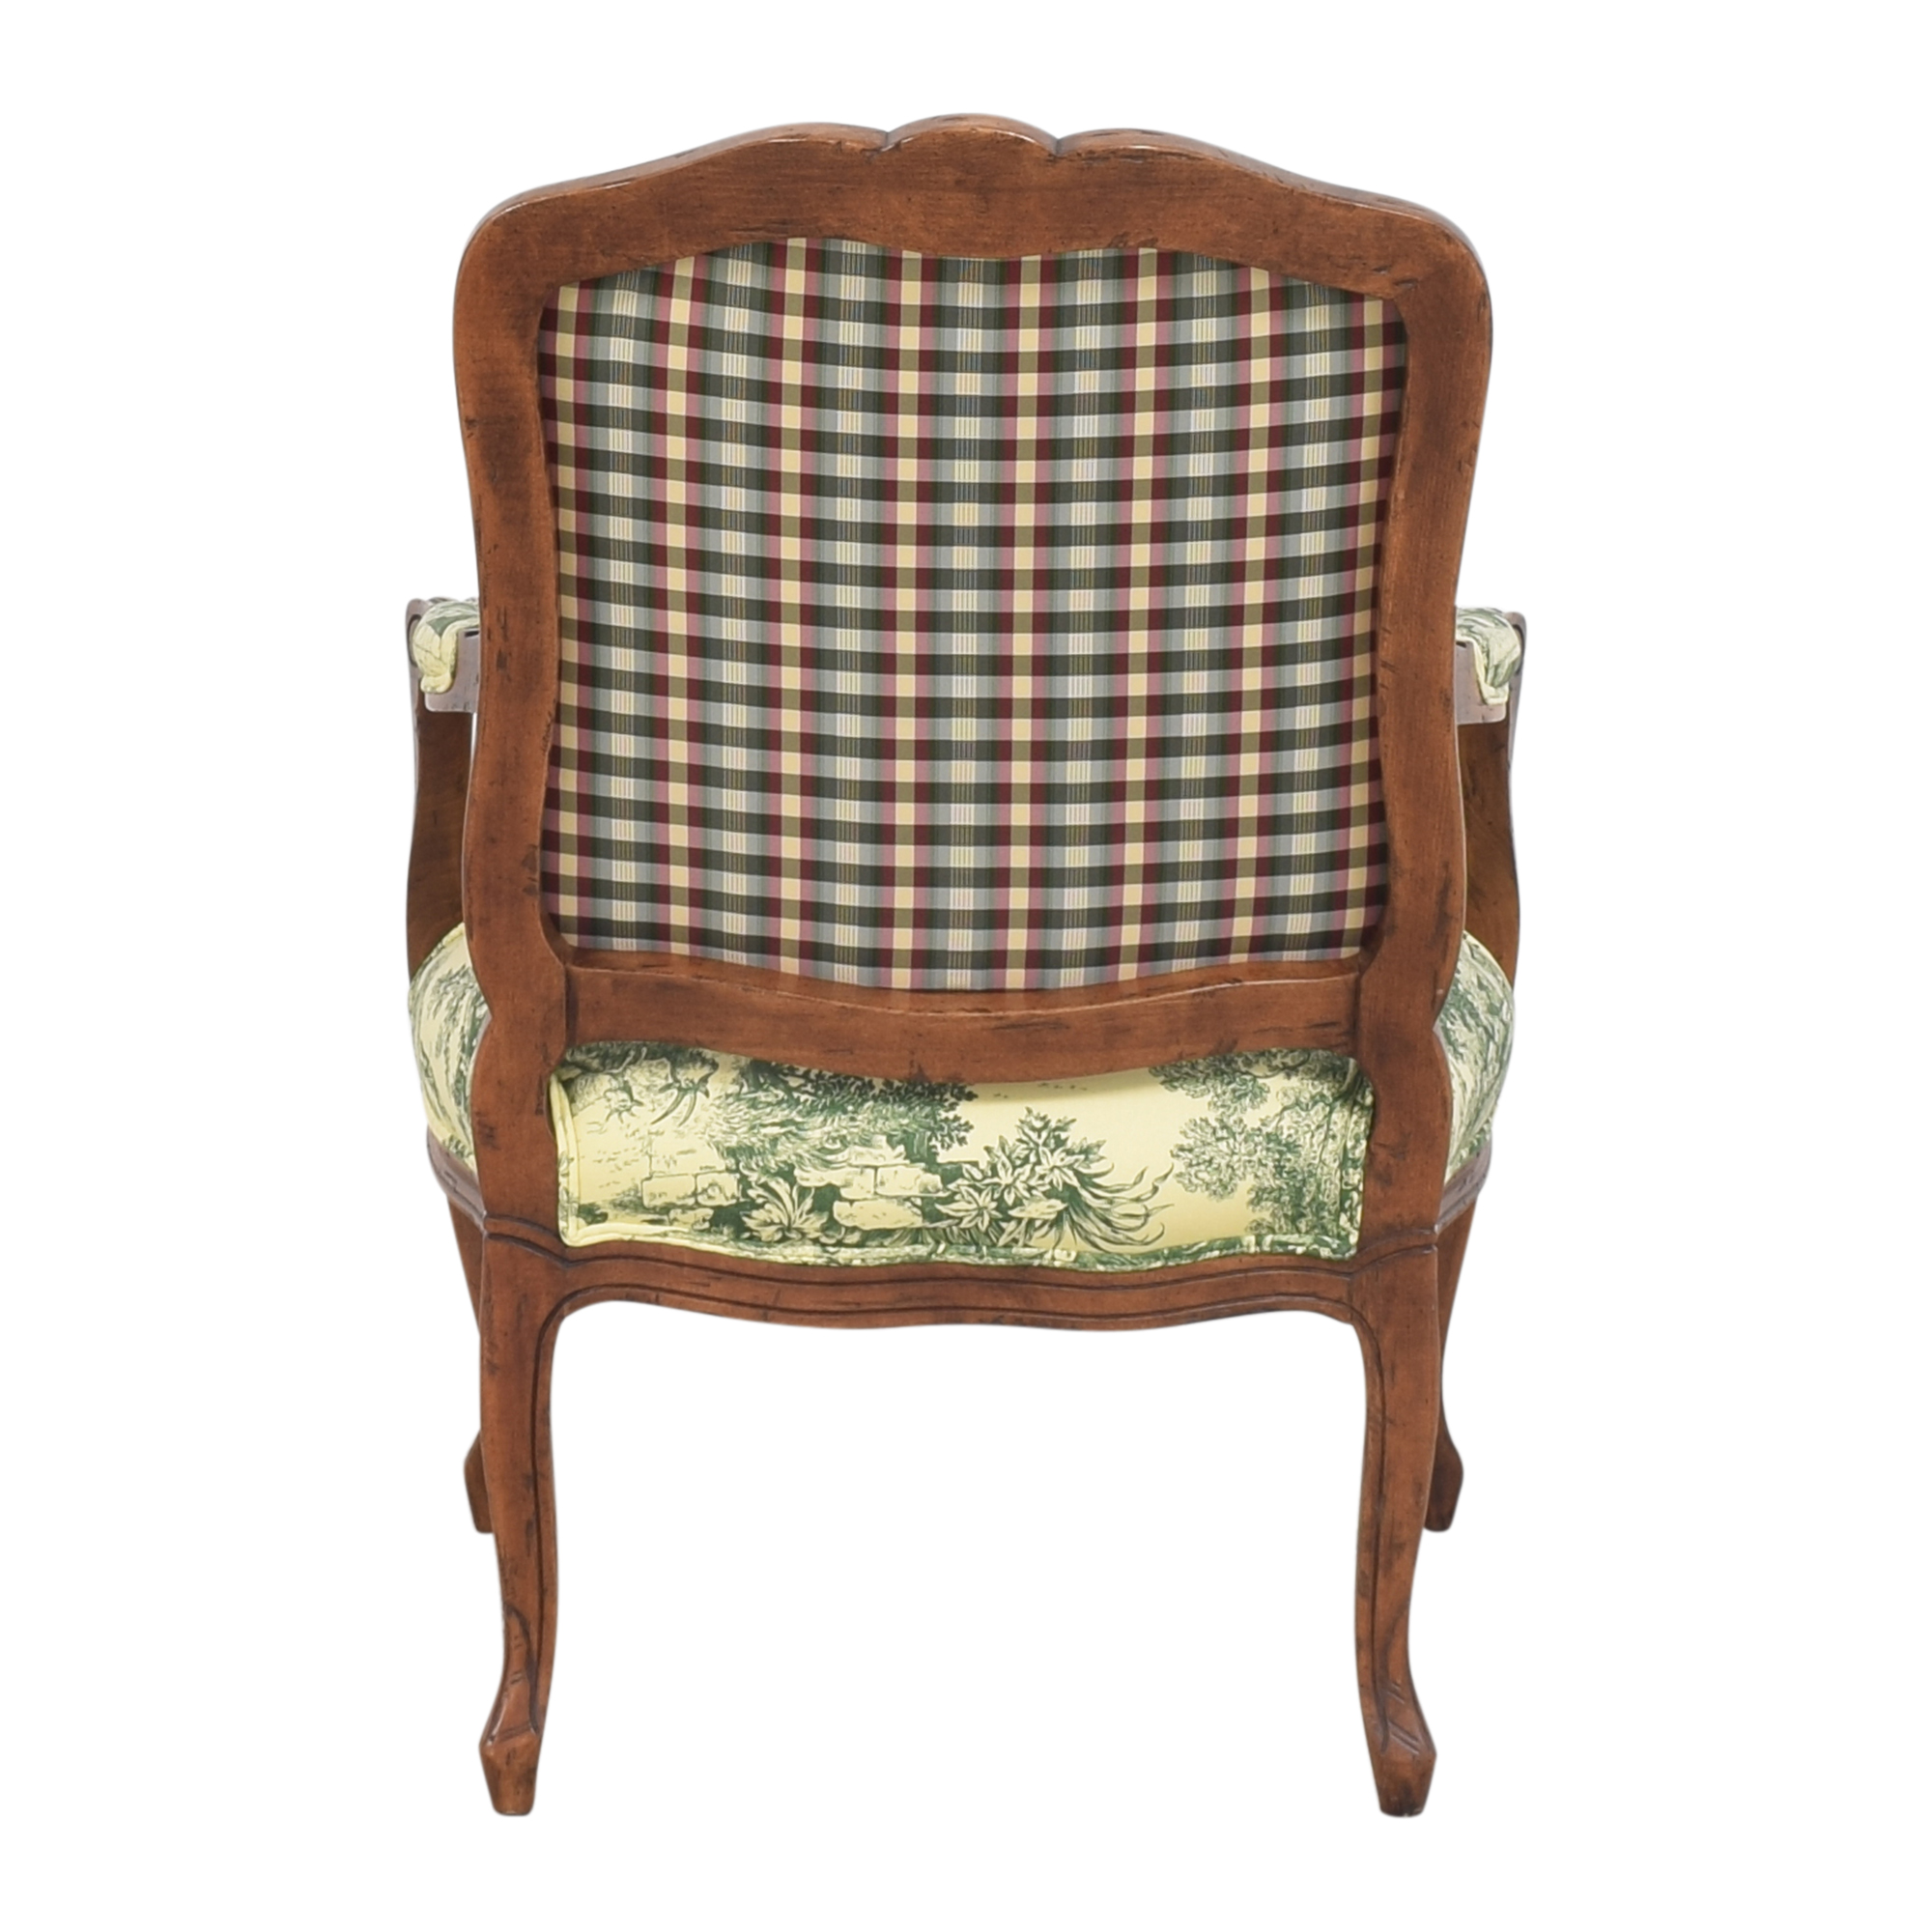 Fremarc Designs Fremarc Designs Upholstered Arm Chair Chairs